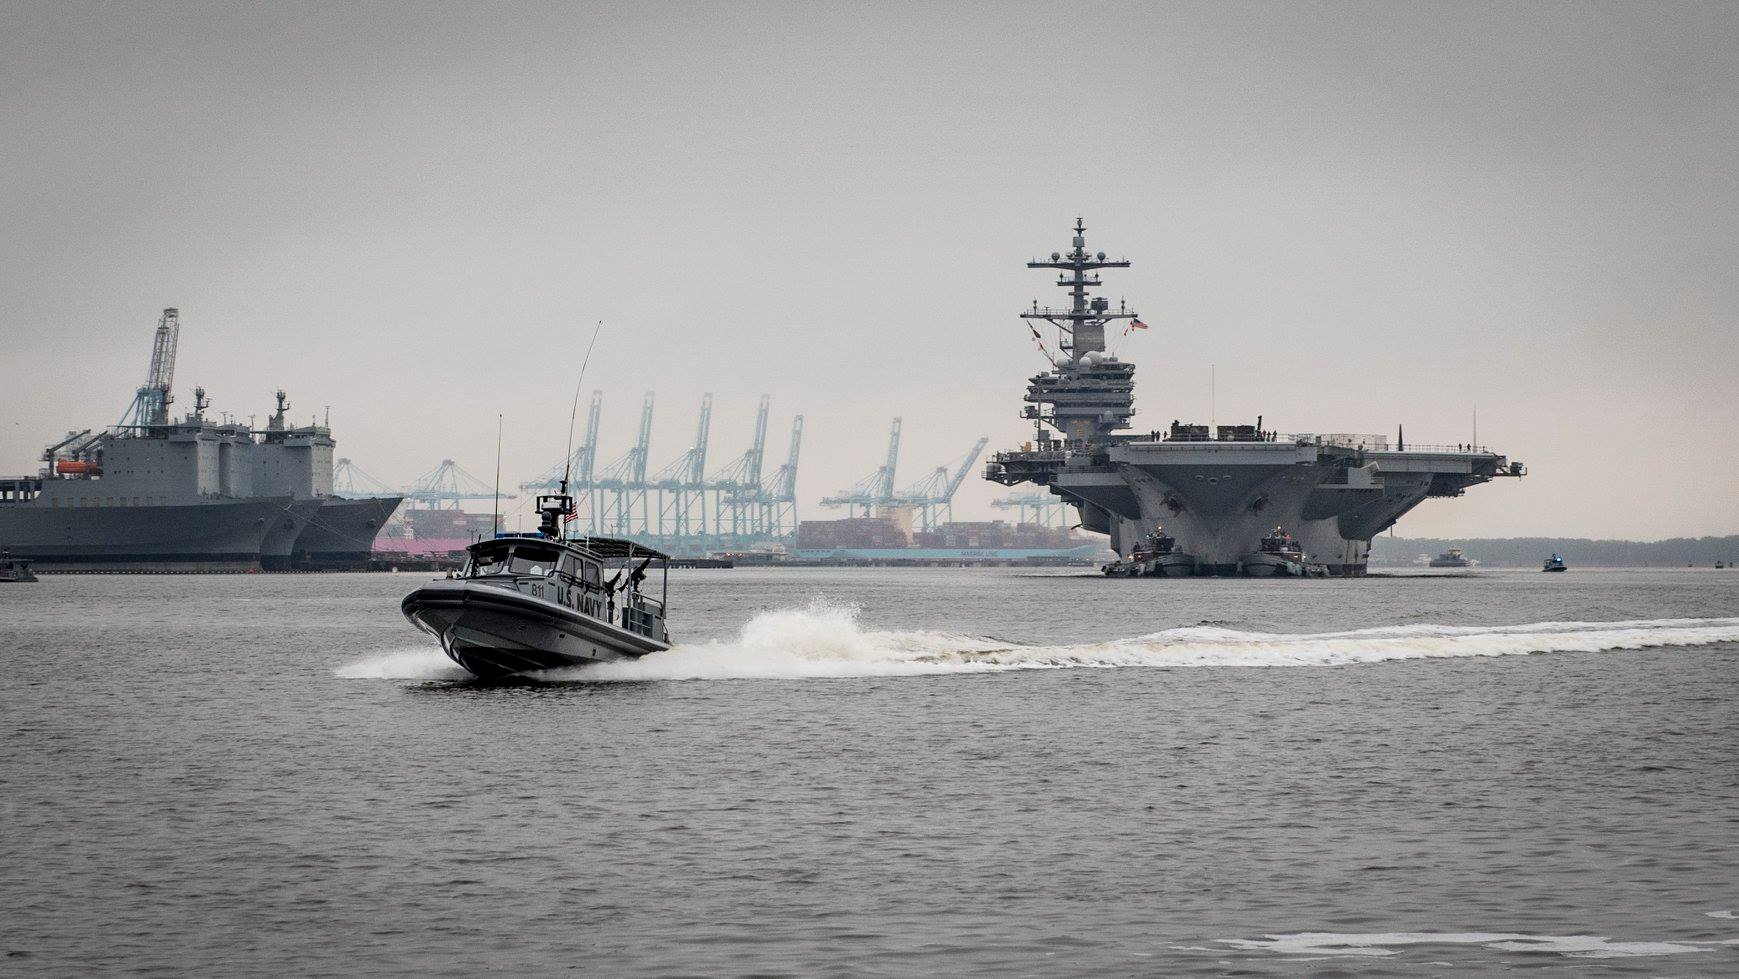 USS H.W. Bush  makes its way up the Elizabeth River. U.S. Navy photo by Mass Communication Specialist Seaman Steven Edgar